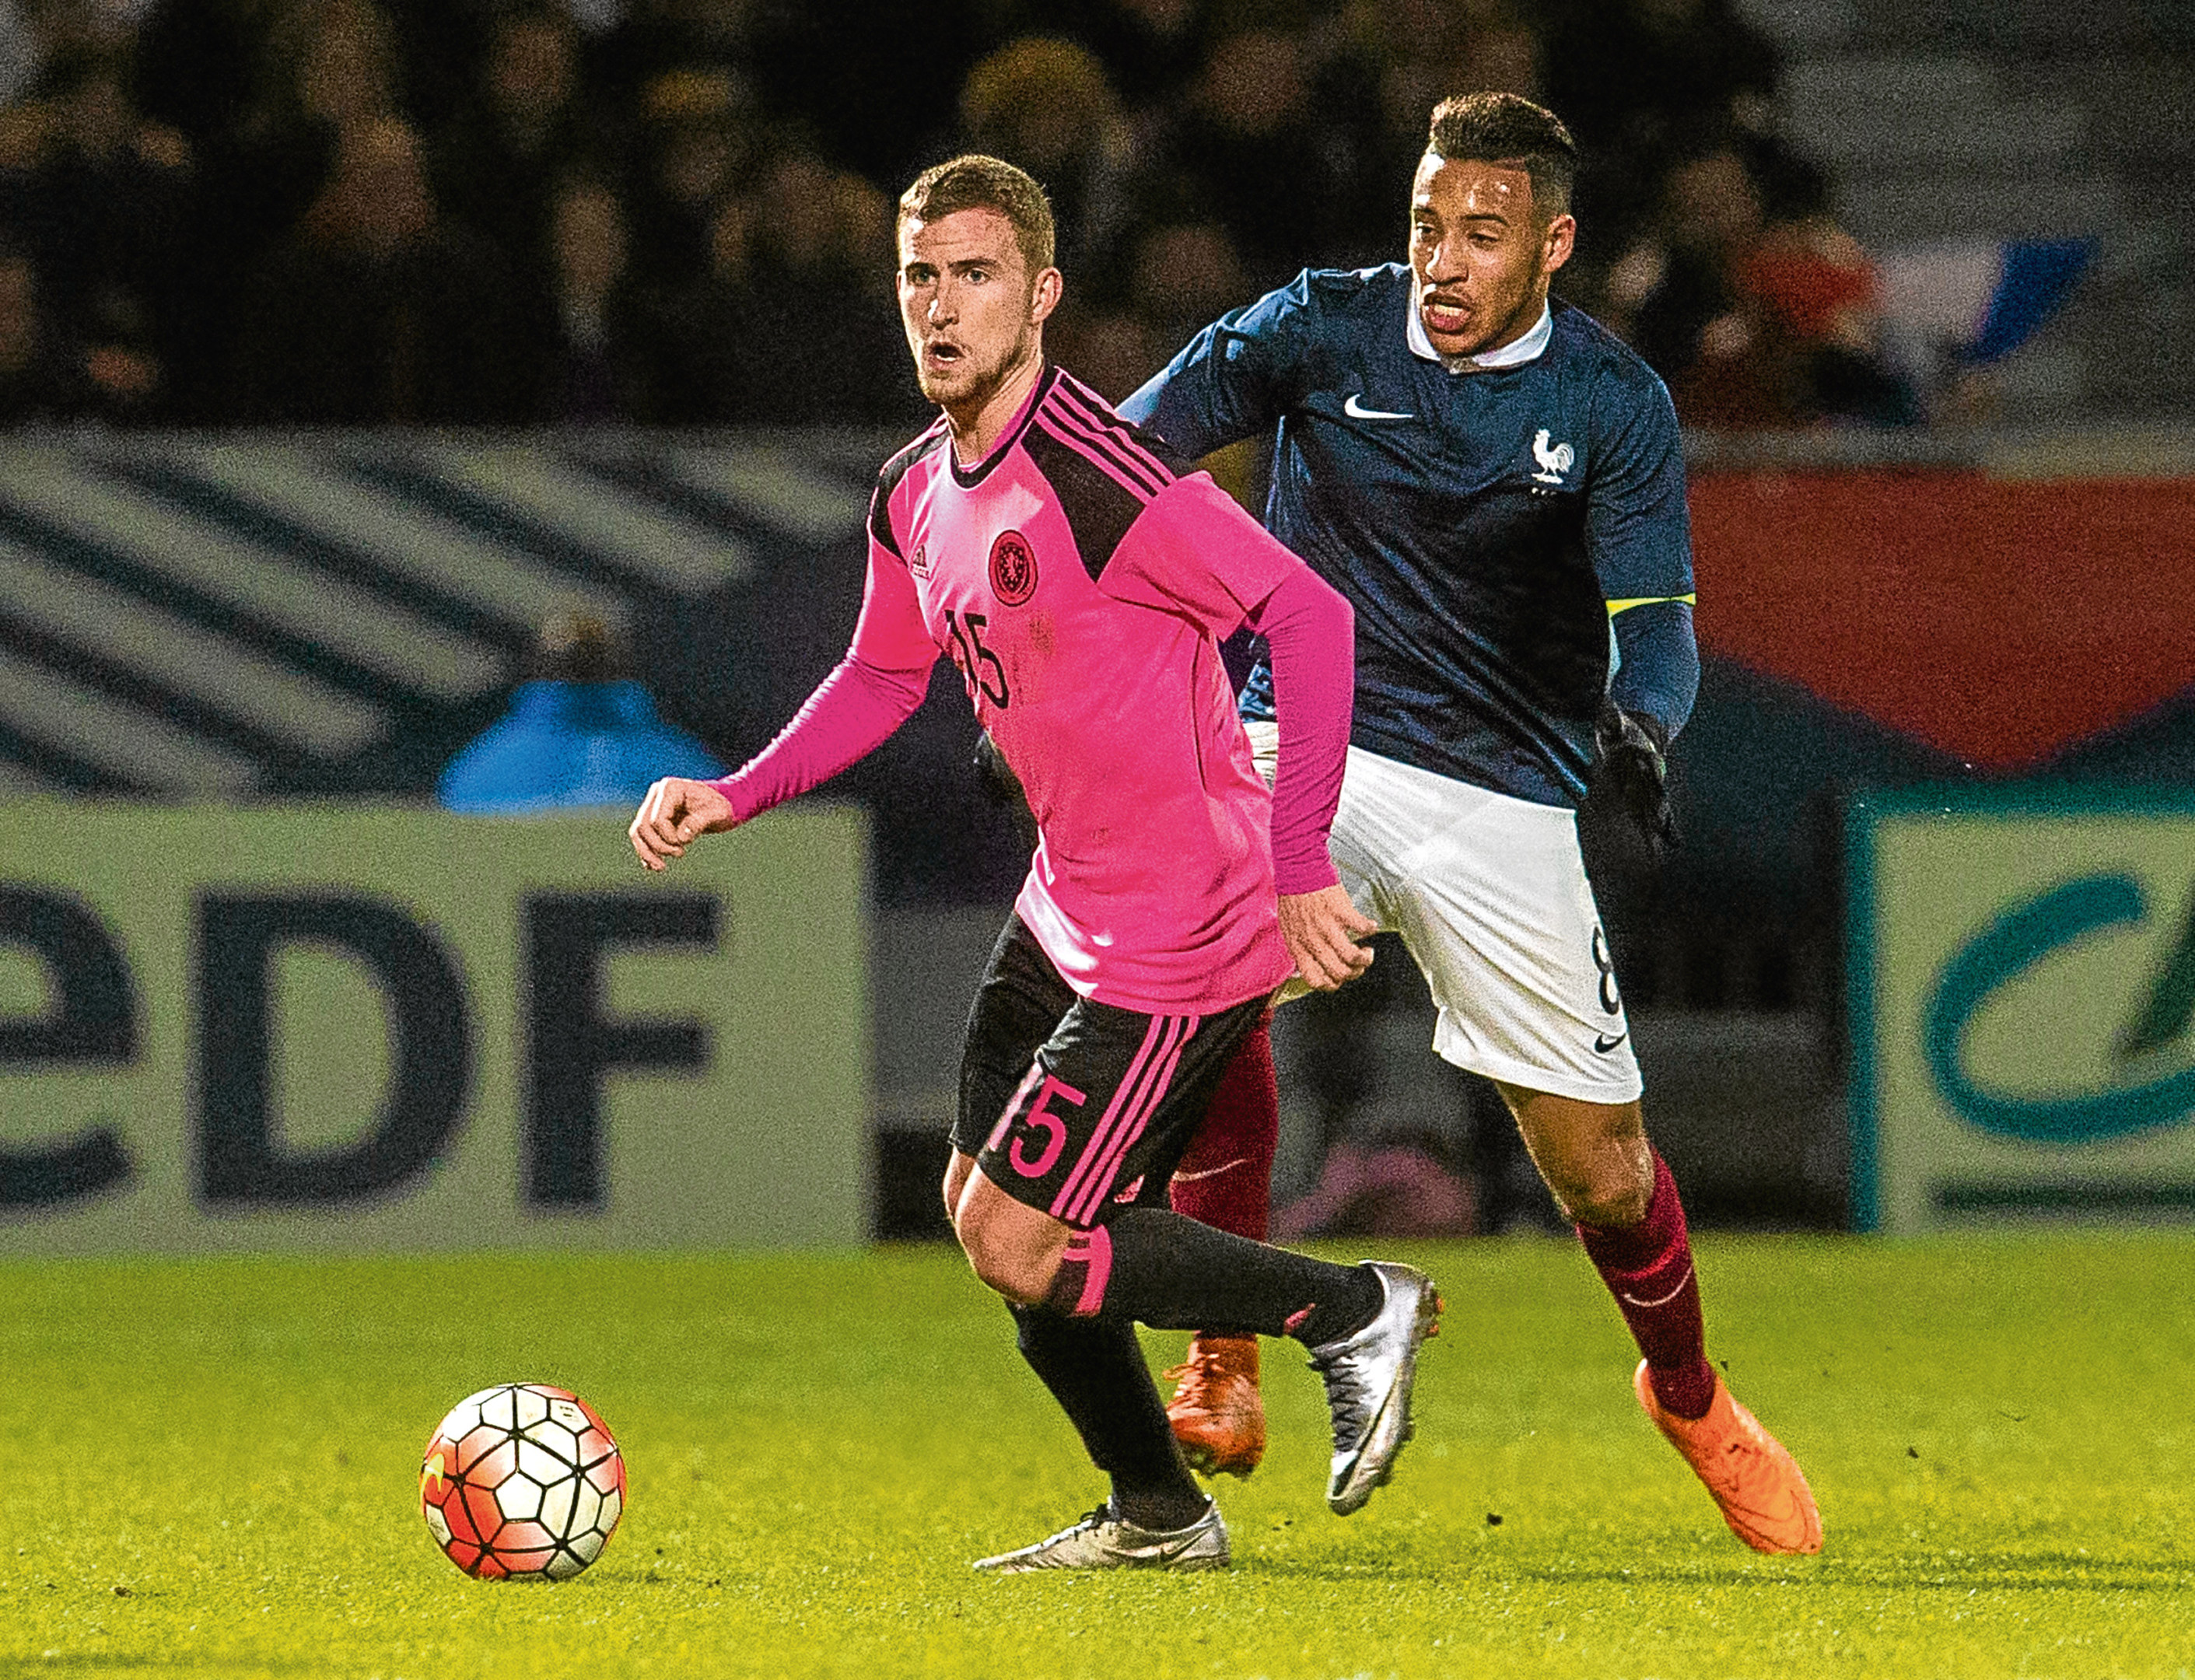 Craig Slater, pictured in action for Scotland U/21s, has signed for Dundee United on loan from Colchester United until the end of the season.